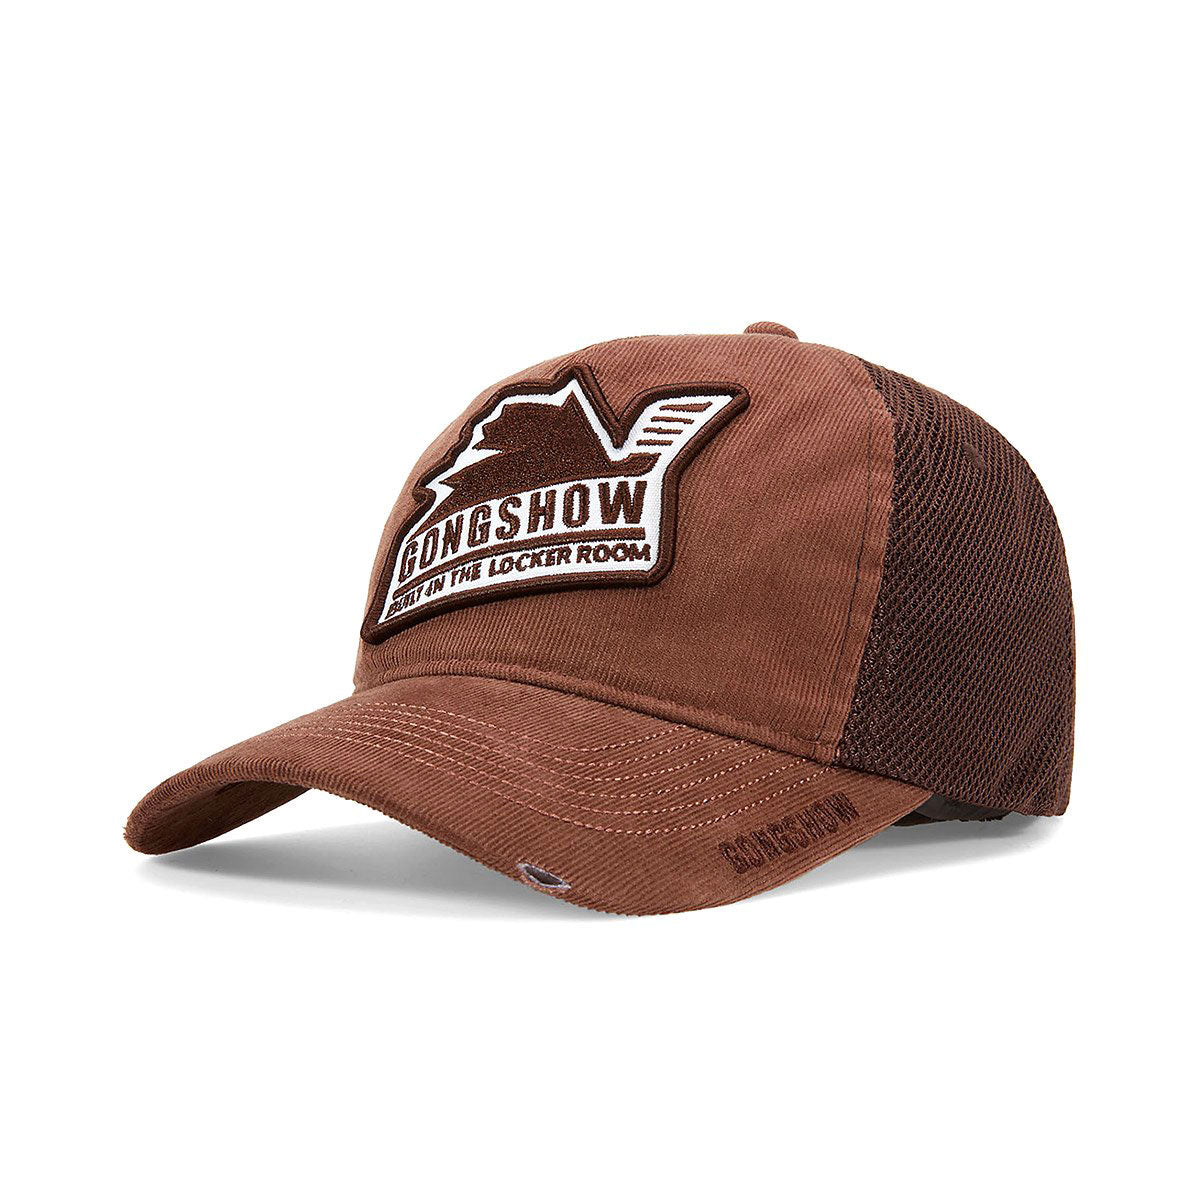 Gongshow Hockey Roughed Up Snapback Hat